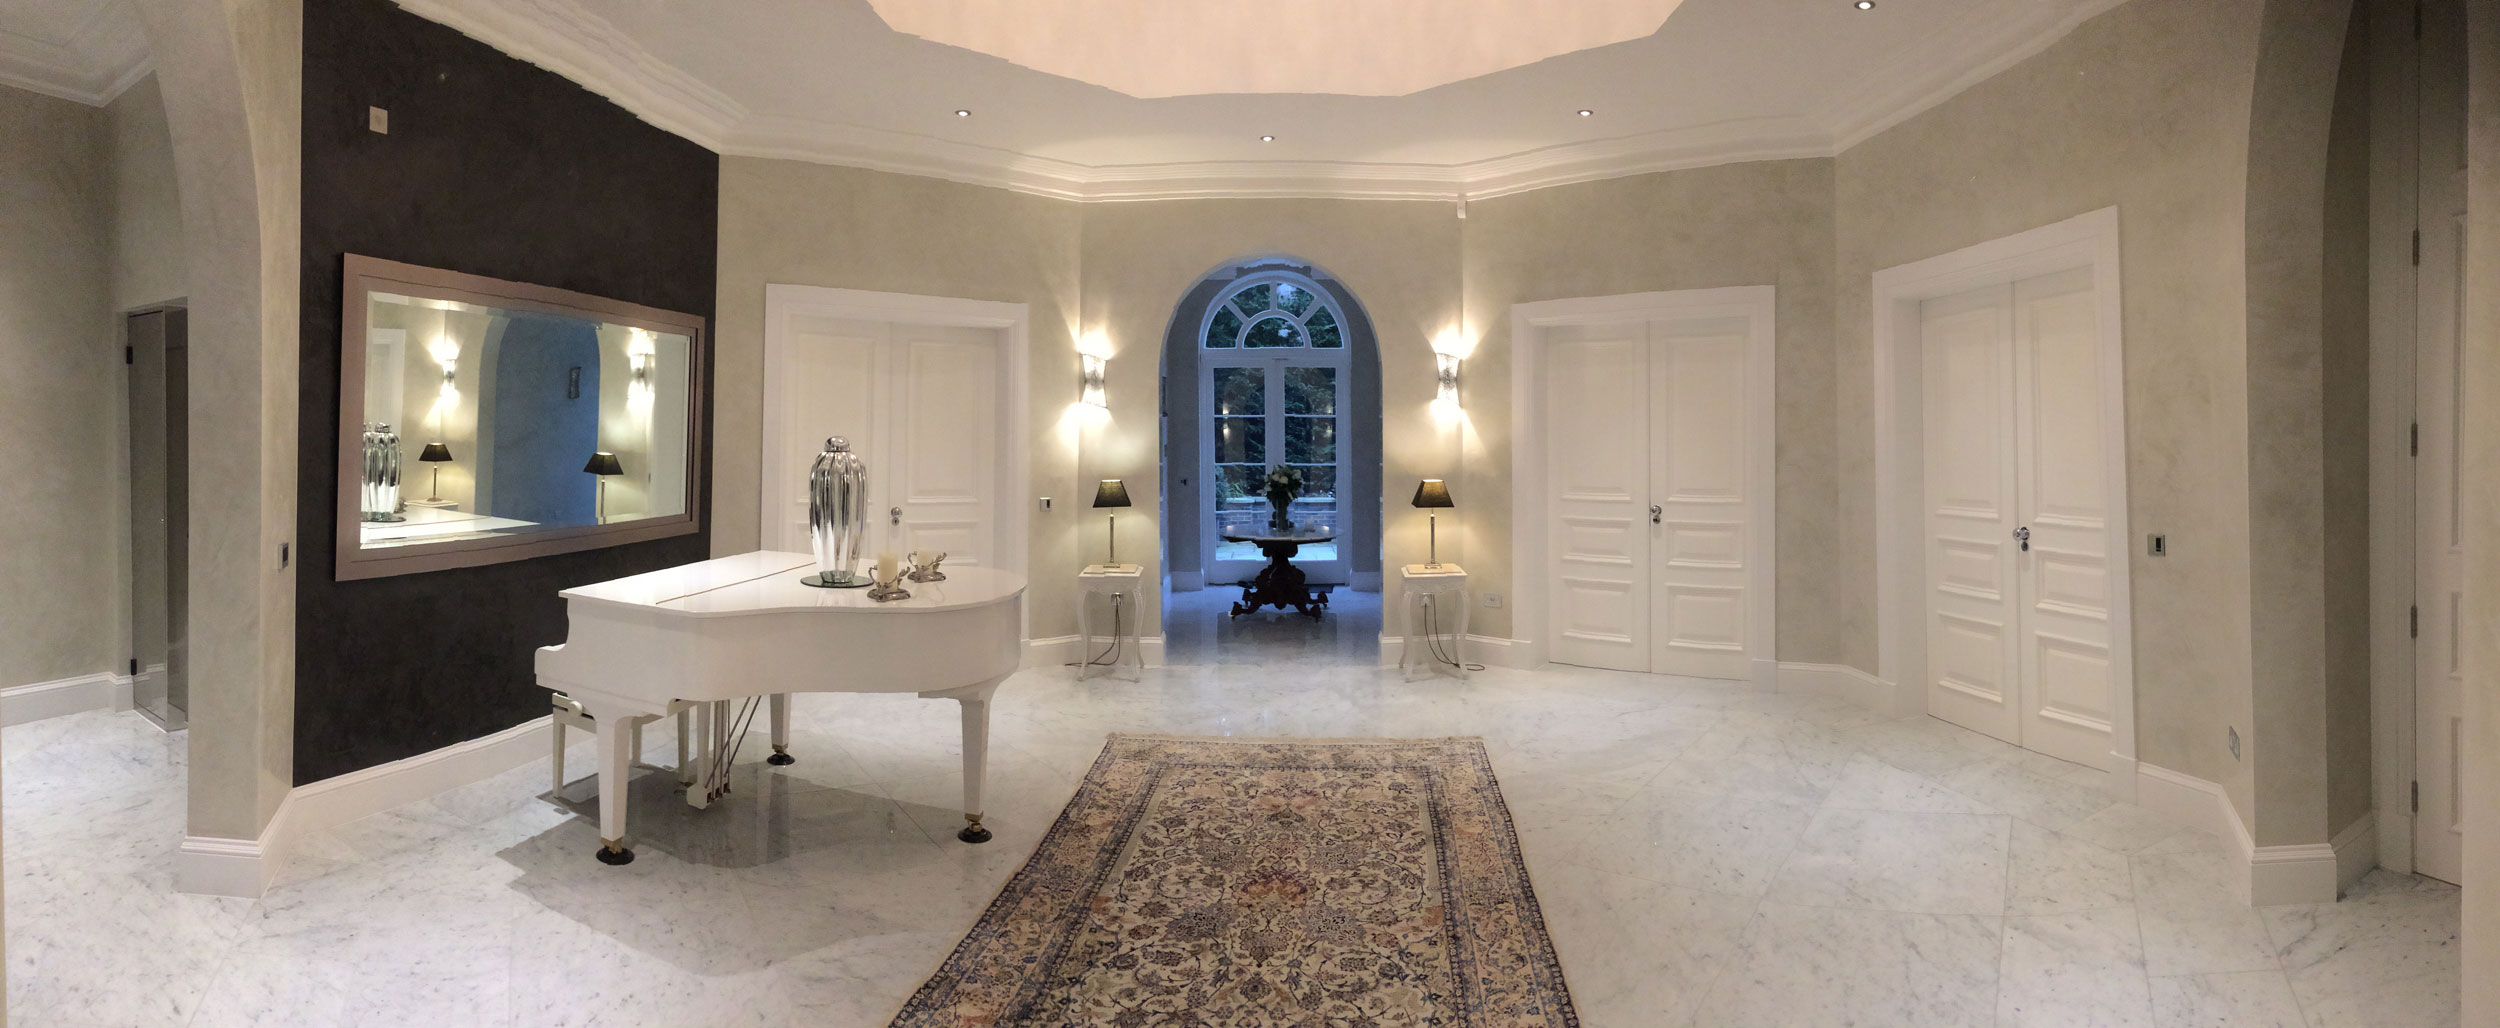 Lutron Homeworks in a classical residence